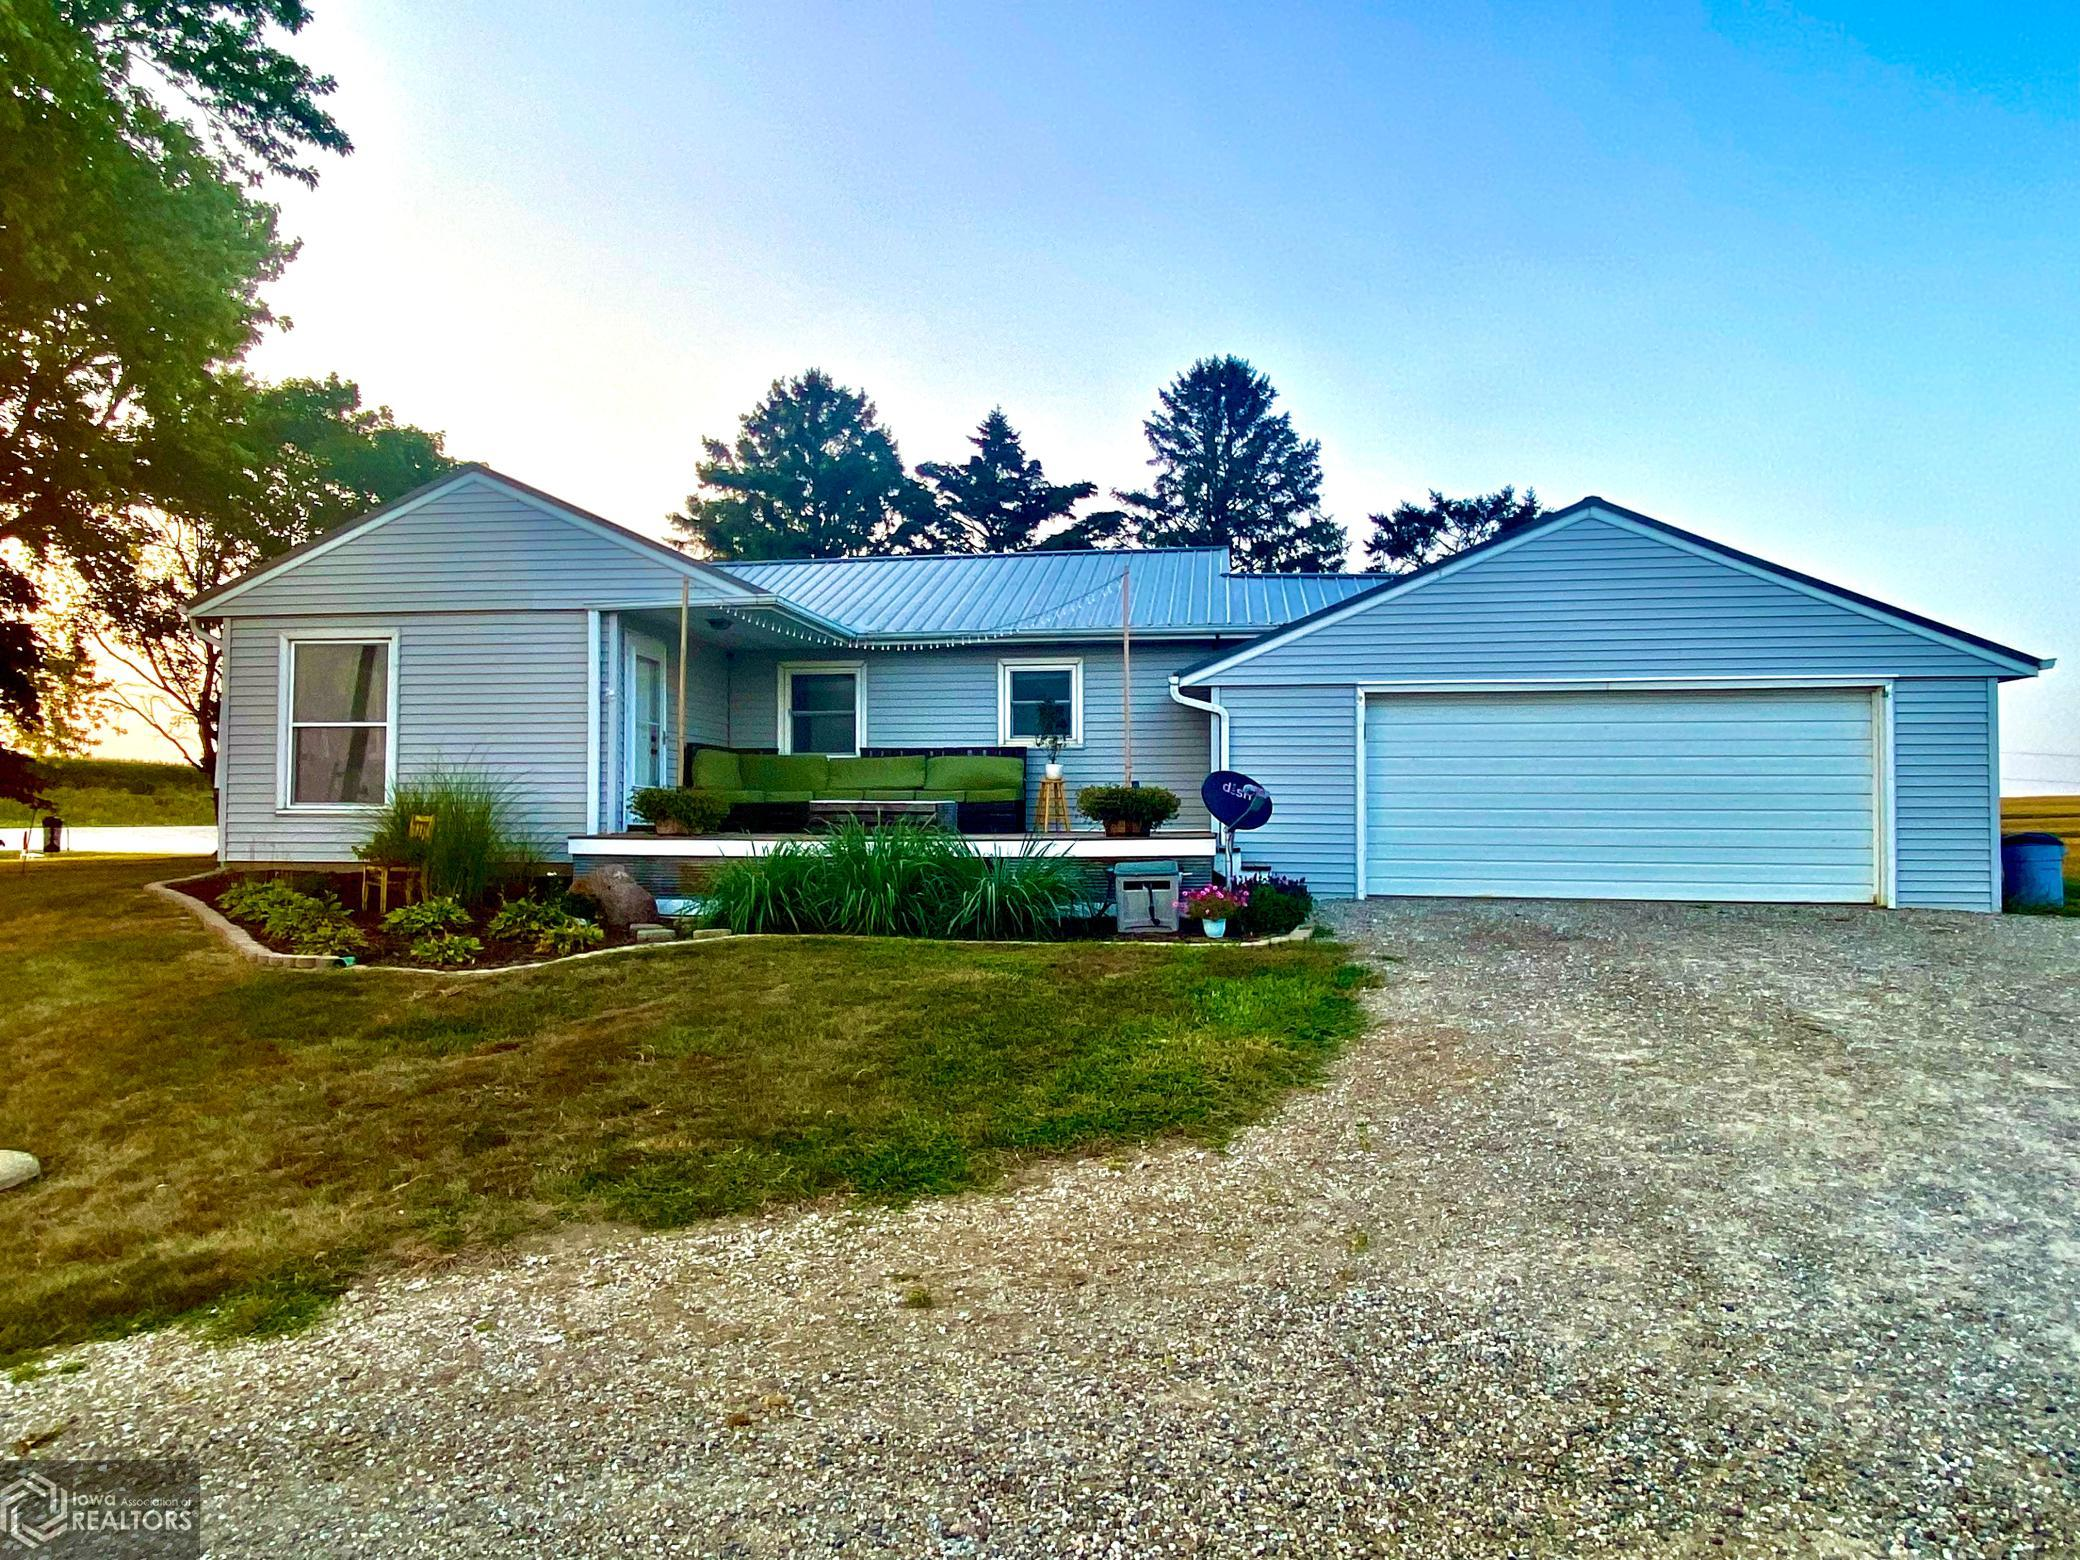 7486 Highway T38, Grinnell, Iowa 50112-7603, 2 Bedrooms Bedrooms, ,1 BathroomBathrooms,Single Family,For Sale,Highway T38,6087117